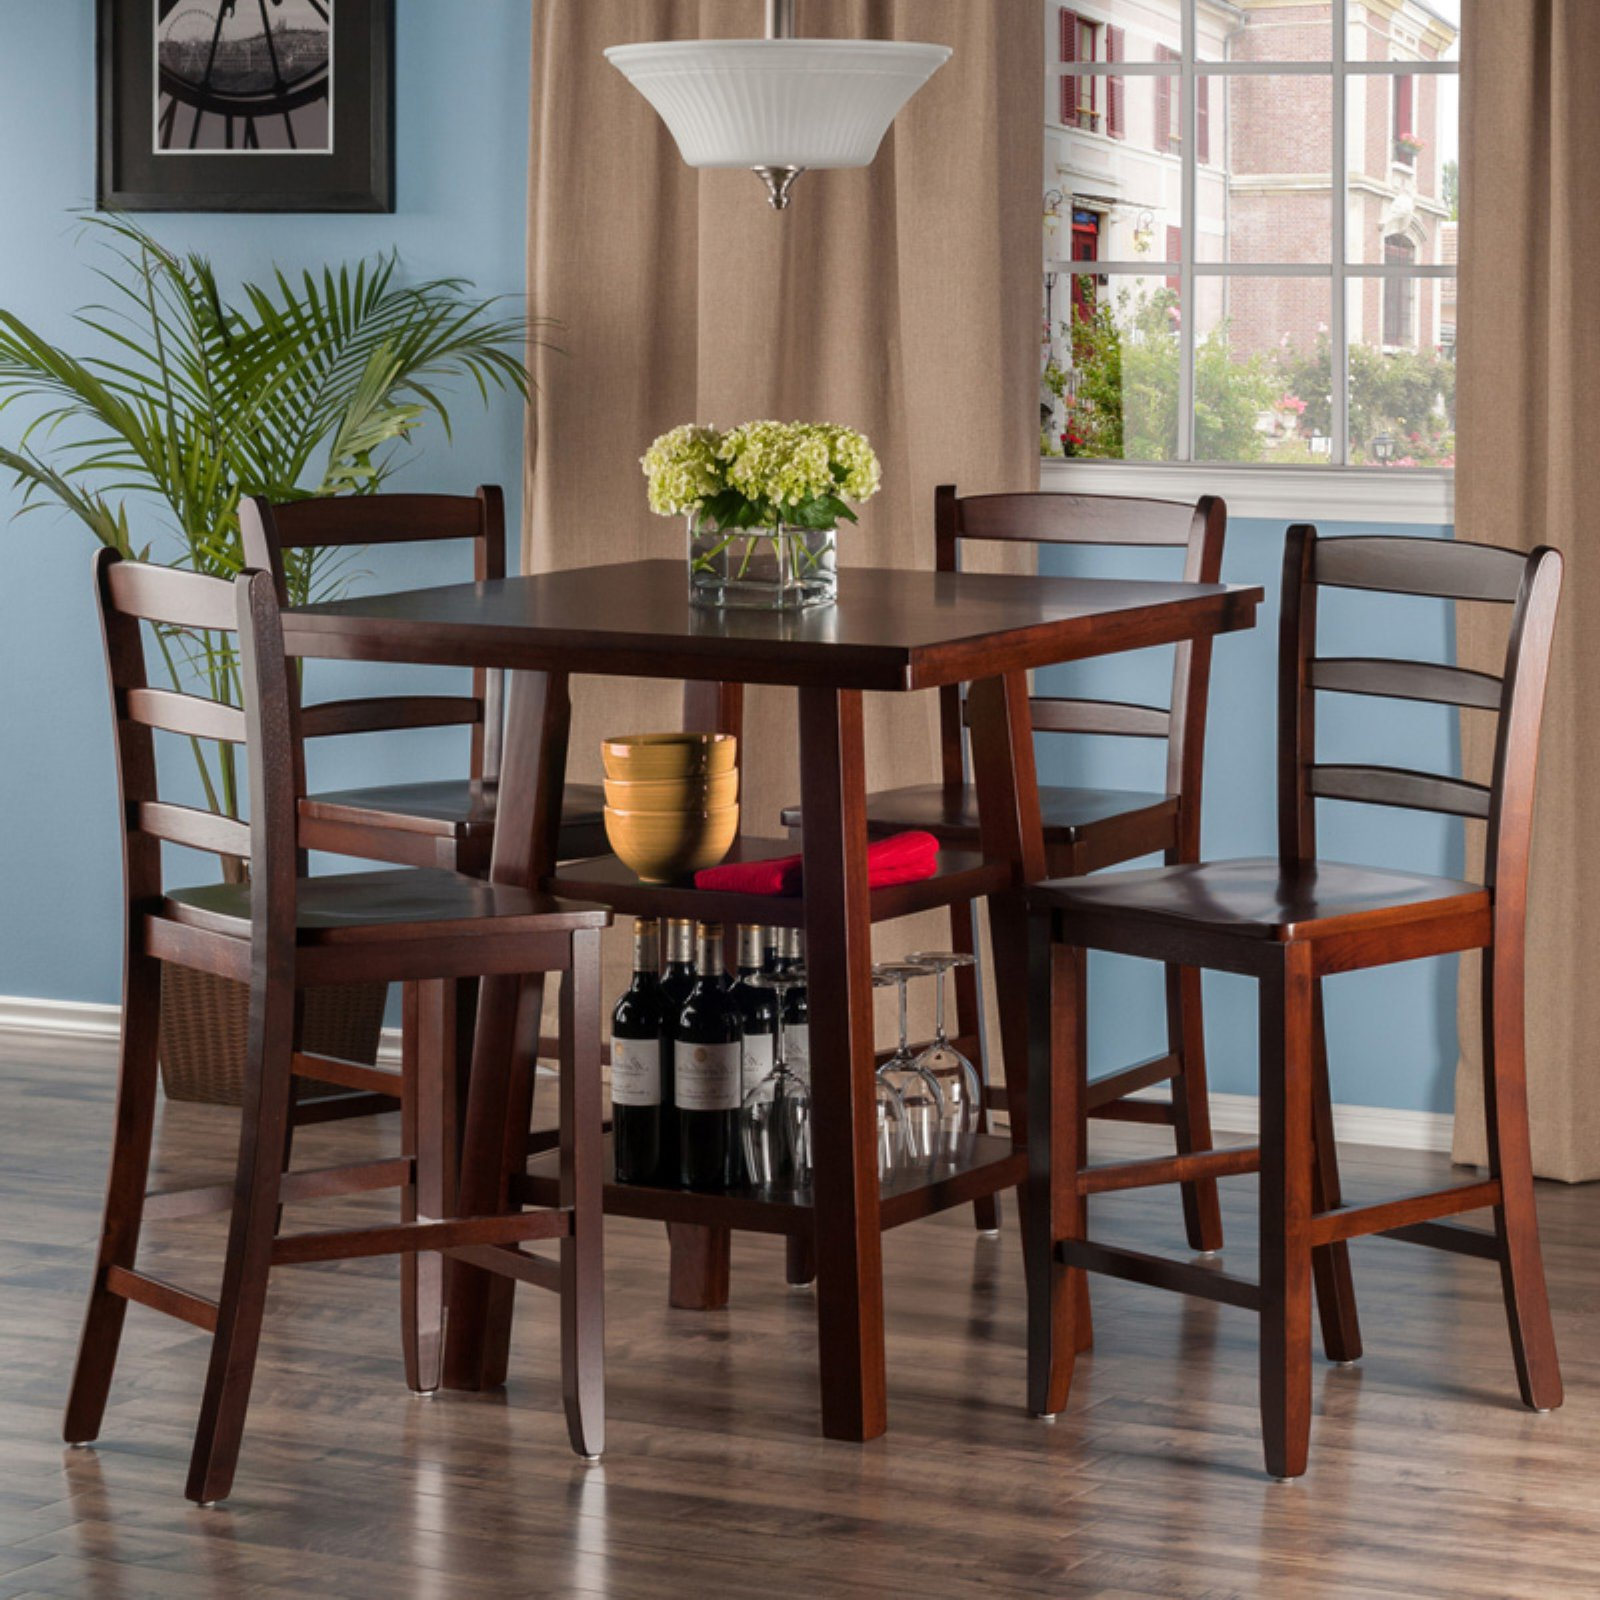 Winsome Orlando 5 Piece Counter Height Dining Table Set With In Most Recently Released Casiano 5 Piece Dining Sets (View 20 of 20)